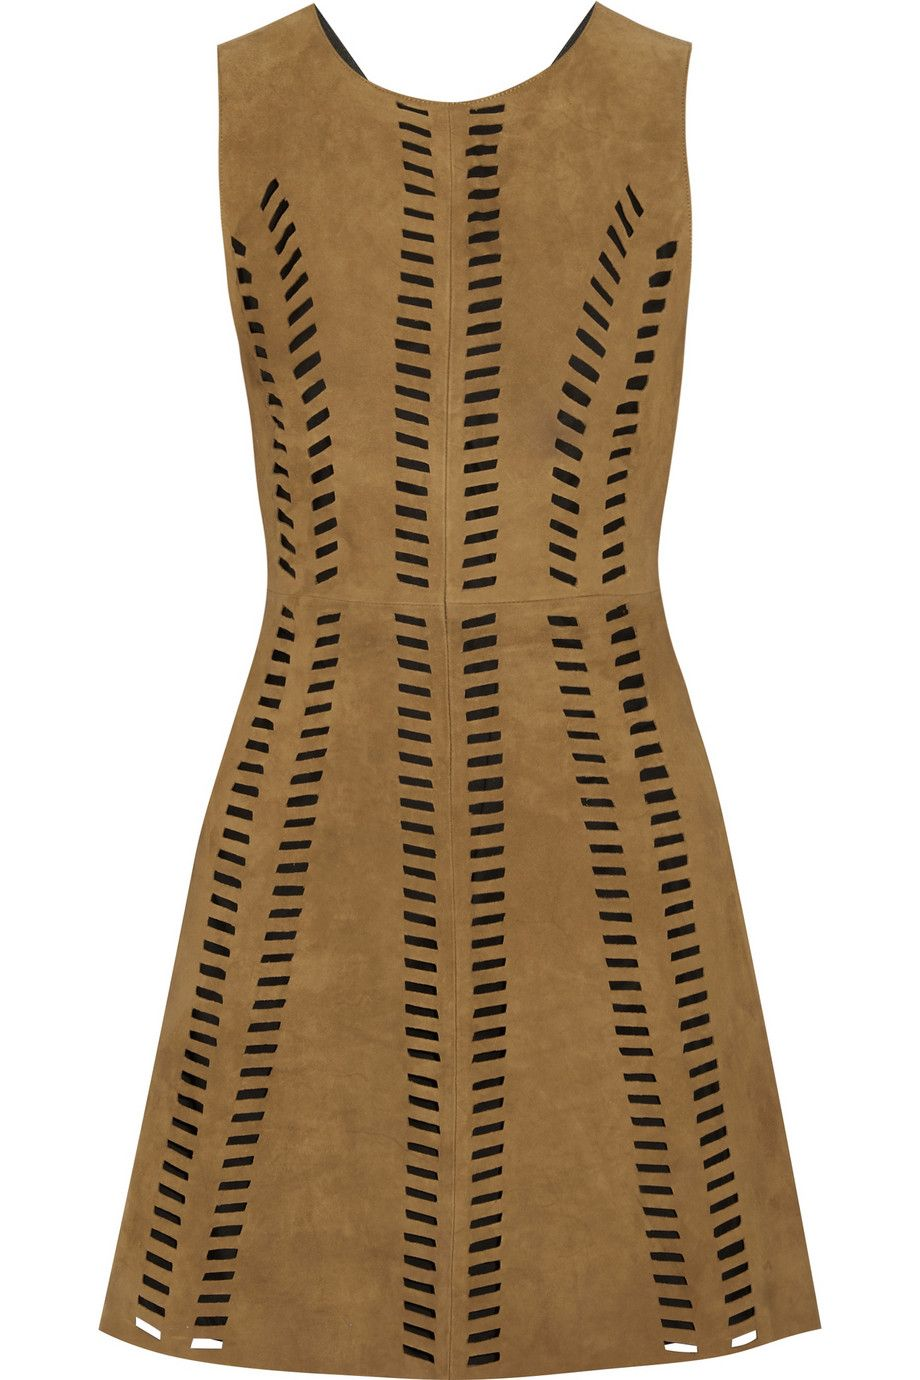 "Maje Rigolette Perforated Suede Mini Dress, $660; &lt;a href=""http://www.net-a-porter.com/us/en/product/558400/Maje/rigolette-perforated-suede-mini-dress""&gt;net-a-porter.com&lt;/a&gt;   <!--EndFragment-->"